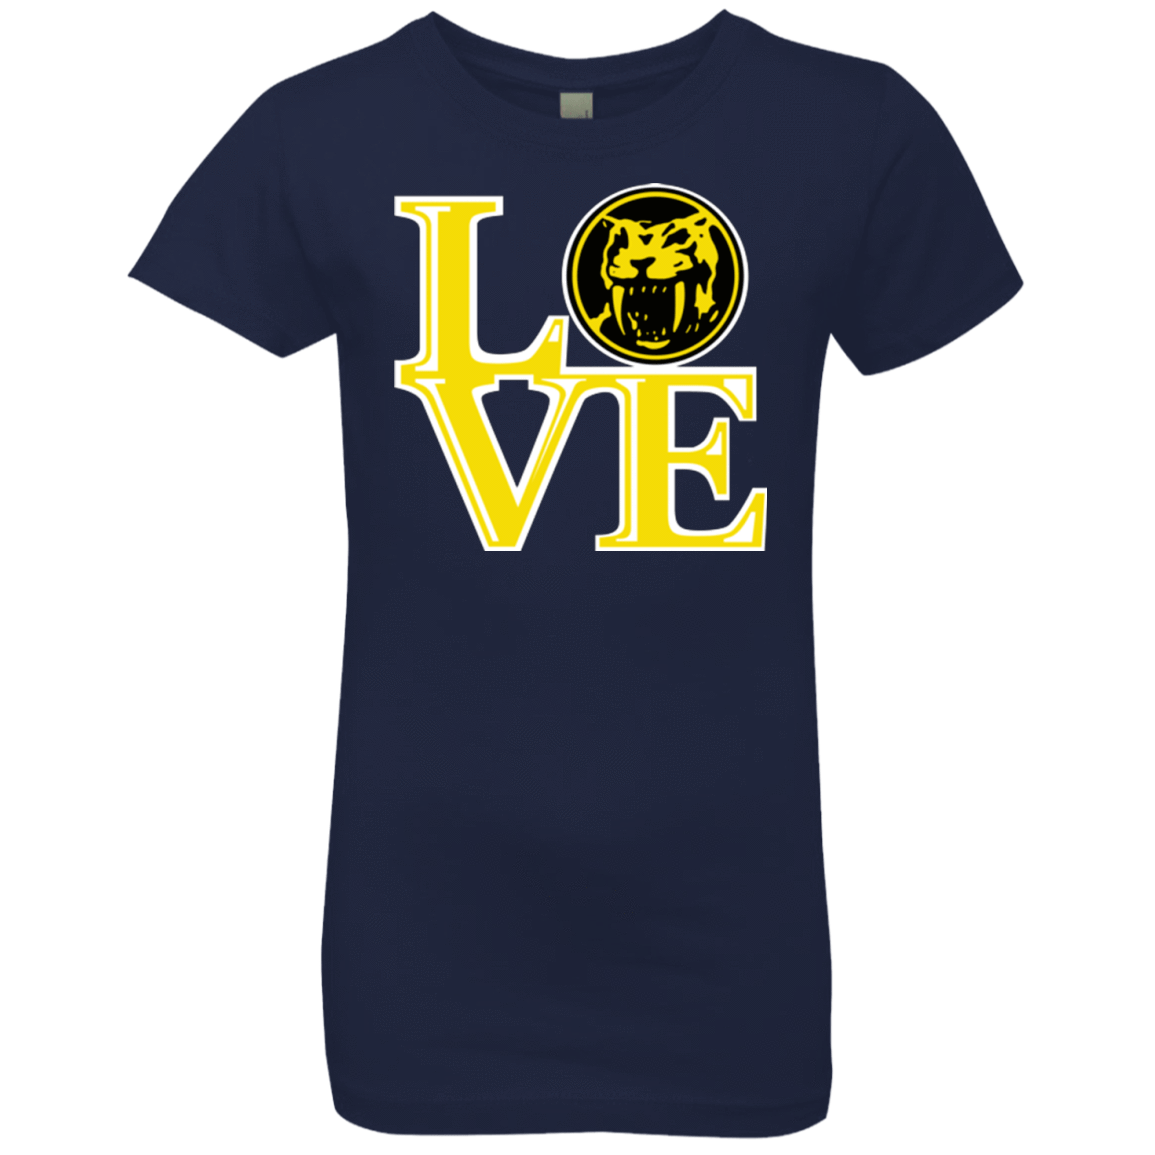 T-Shirts Midnight Navy / YXS Yellow Ranger LOVE Girls Premium T-Shirt